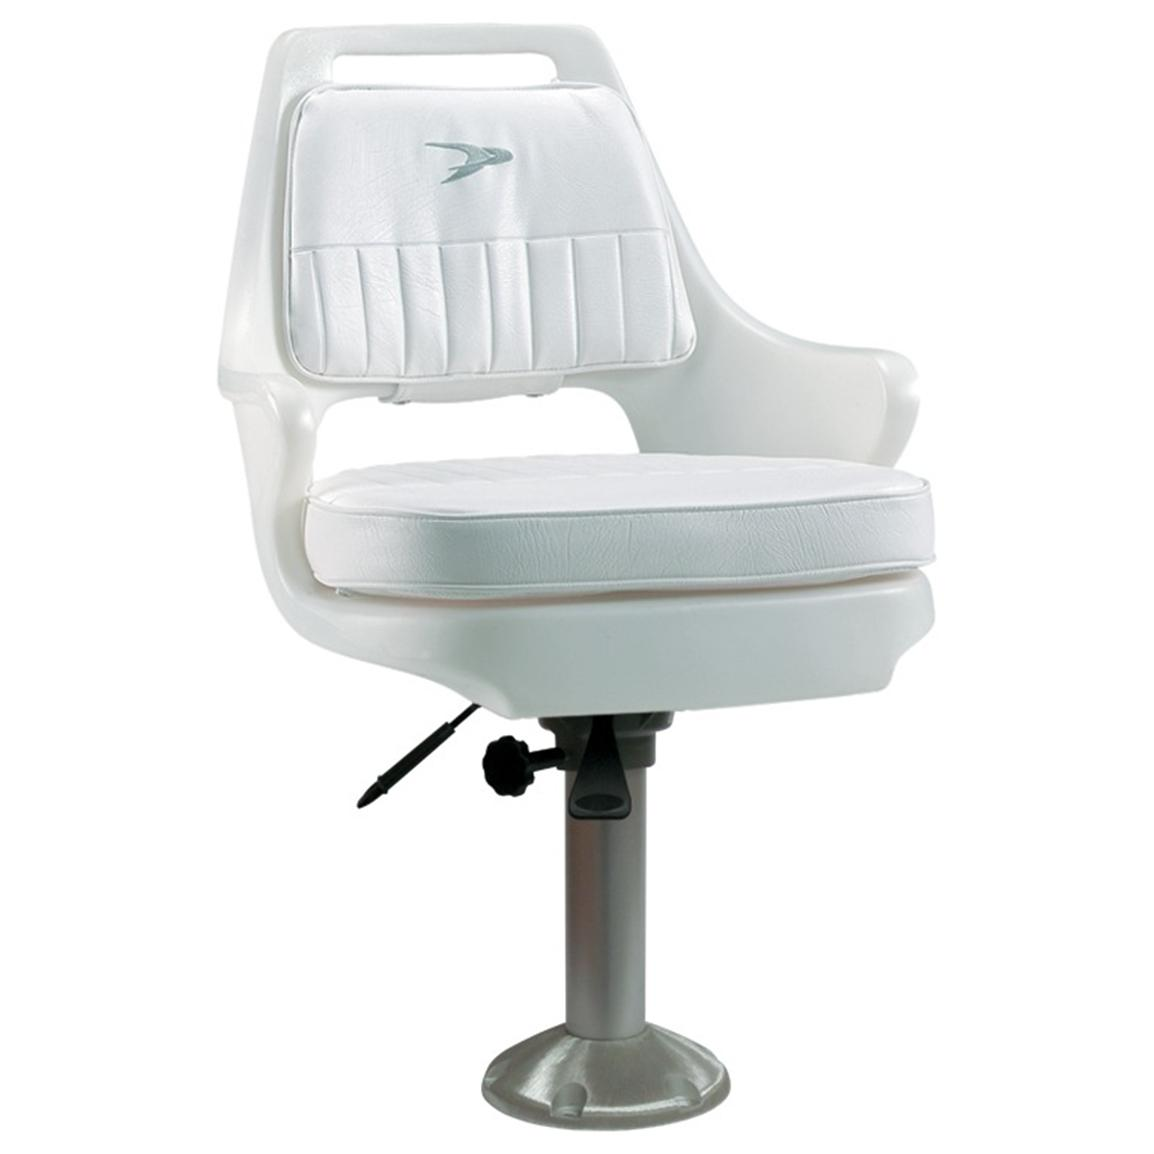 Pedestal Chairs Wise Offshore Pilot Chair With 15 Quot Fixed Pedestal